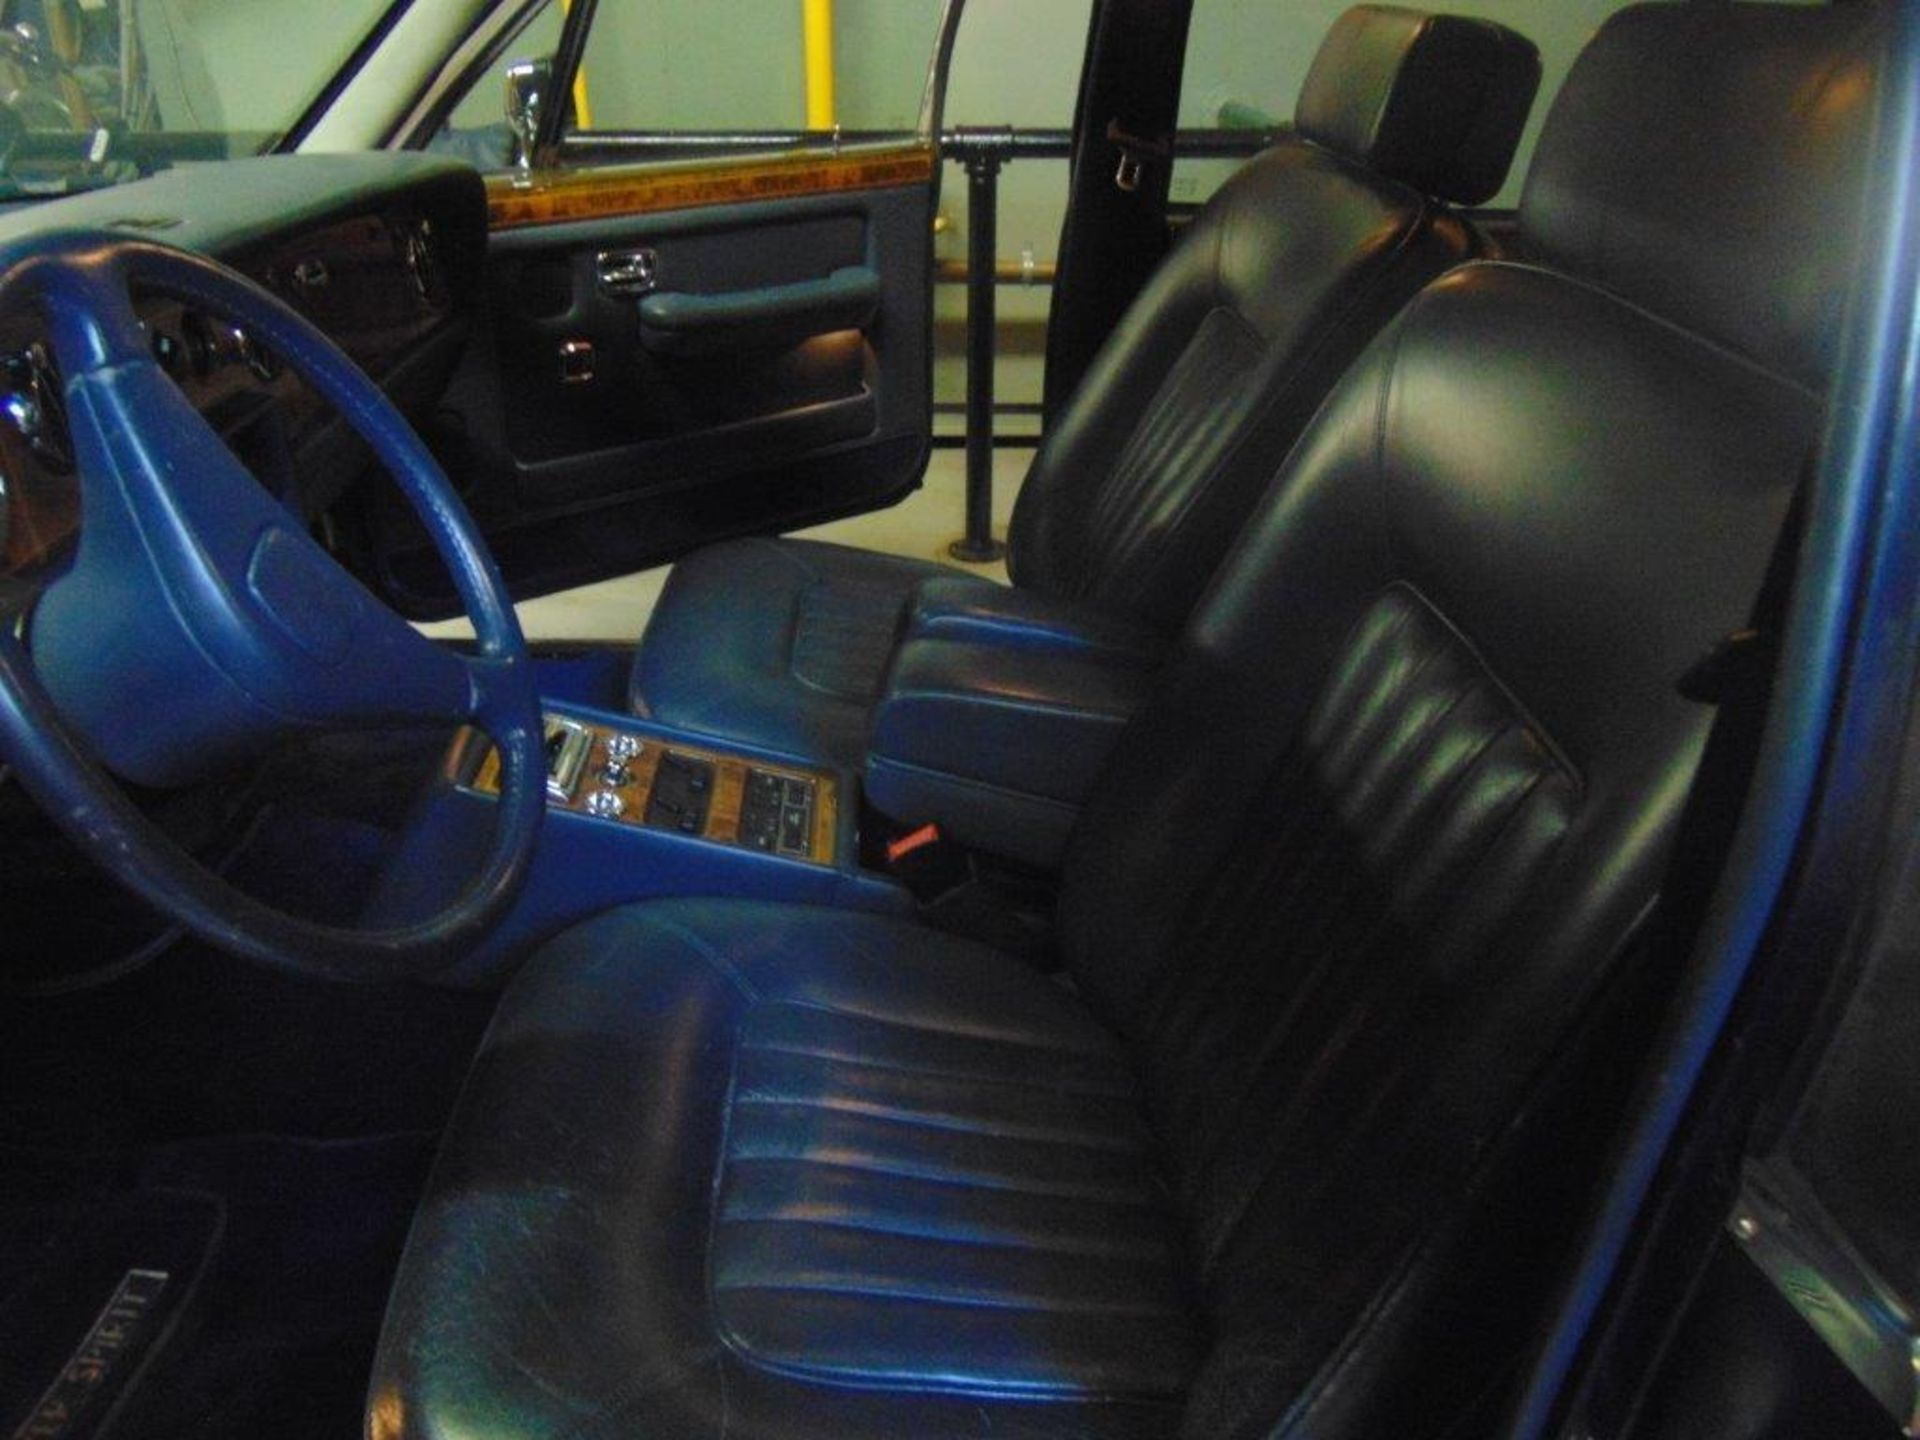 1991 ROLLS-ROYCE SILVER SPIRIT – ROYAL BLUE, 6.8 LIT. AC AND ALL SYSTEMS FULLY FUNCTIONAL, - Image 10 of 11